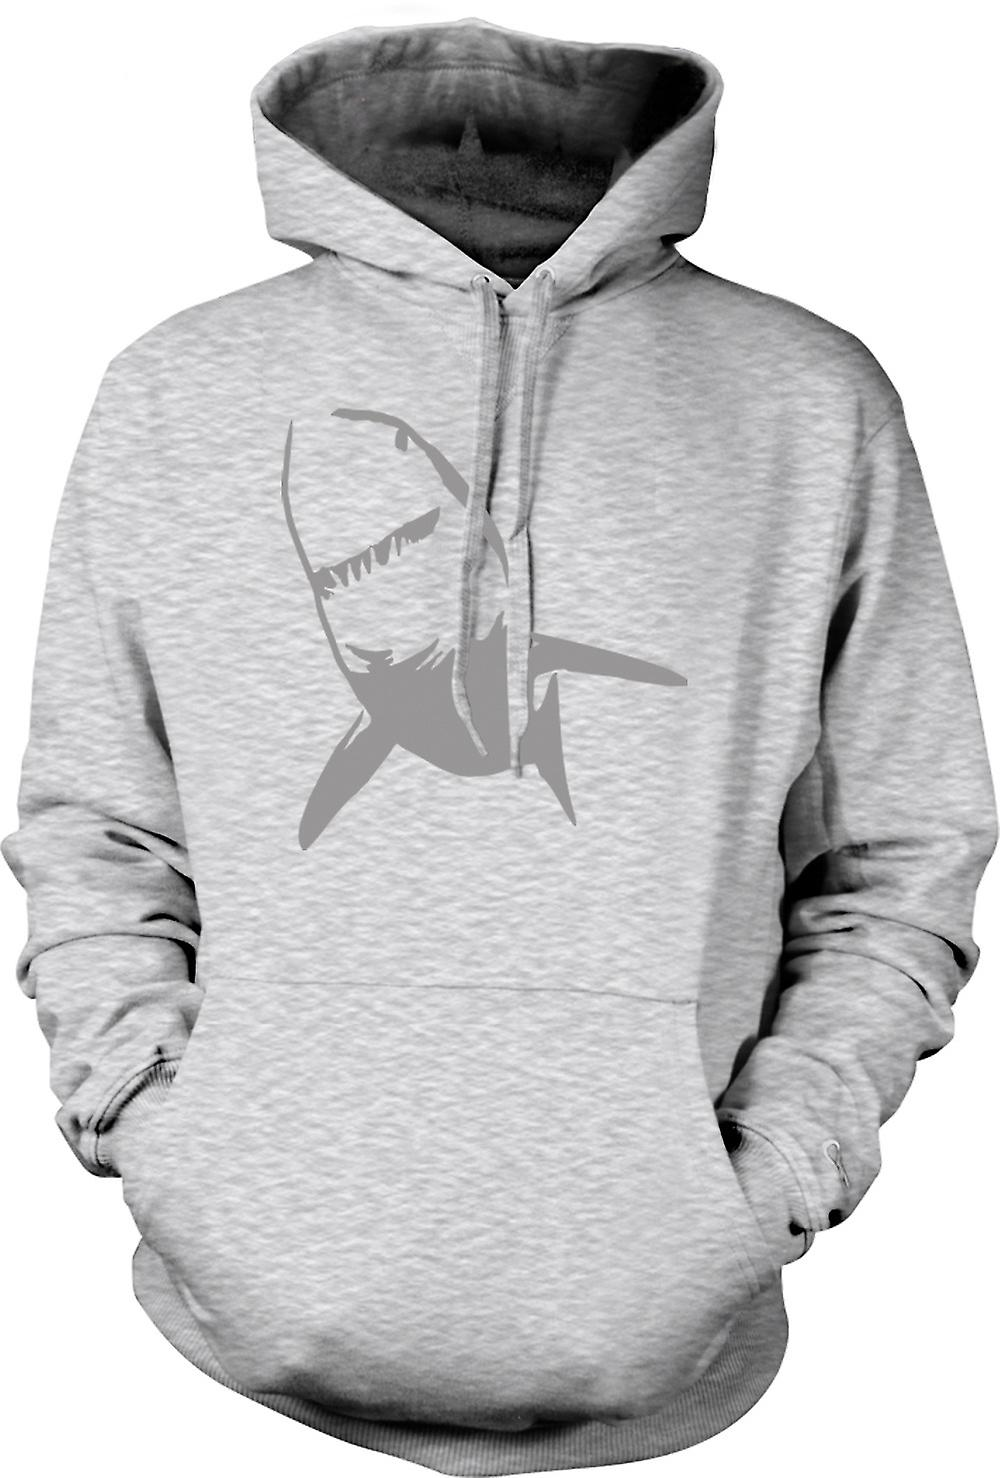 Mens Hoodie - Great White Shark Killer